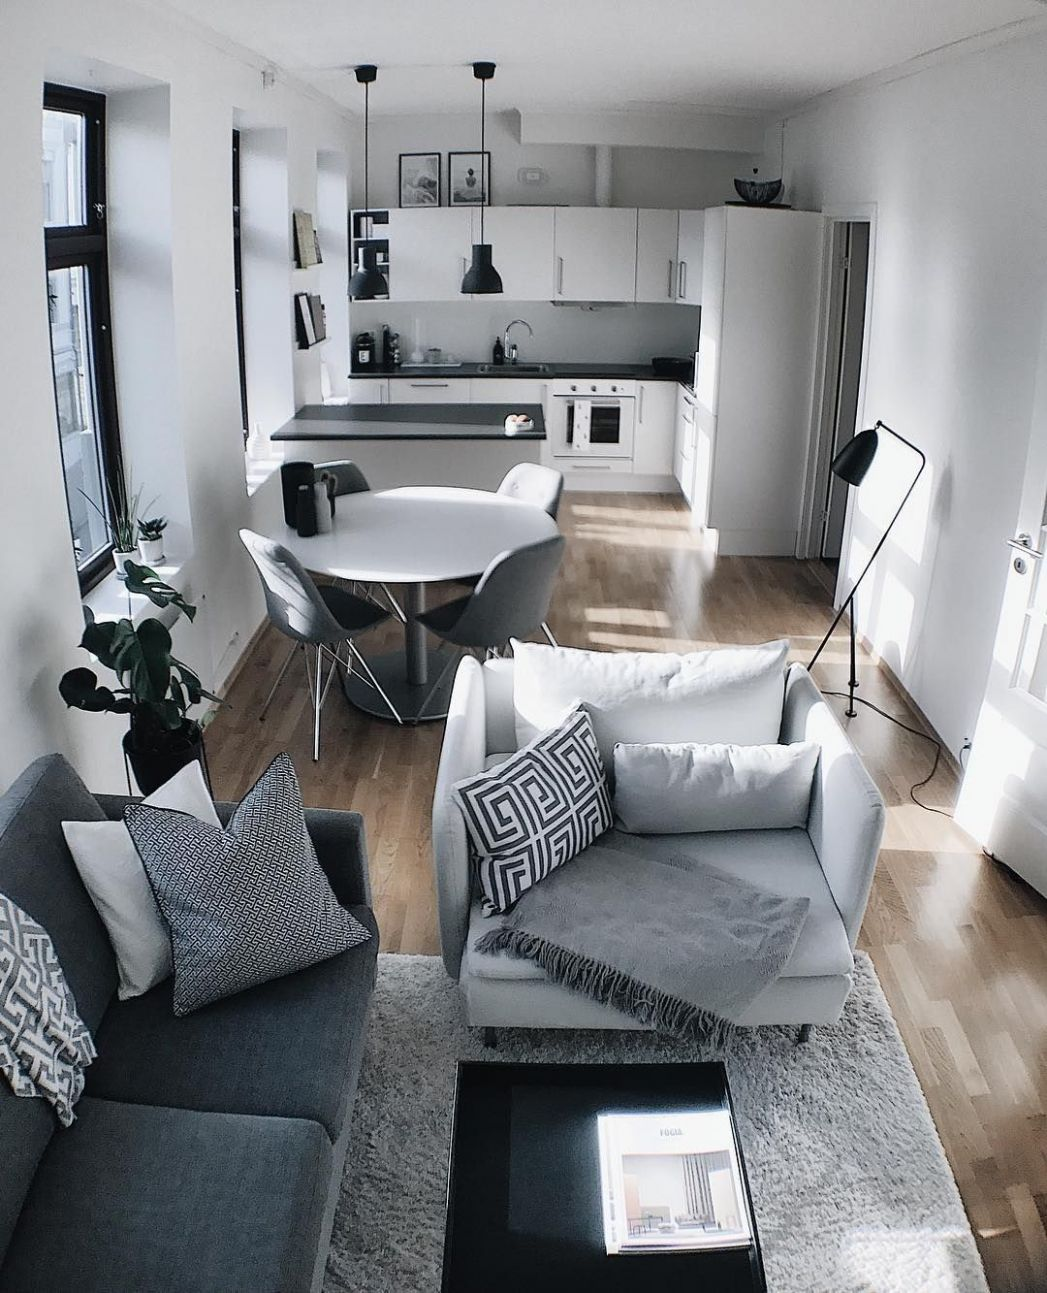 8 Apartment Decorating Ideas On a Budget For a Beautiful Space ..